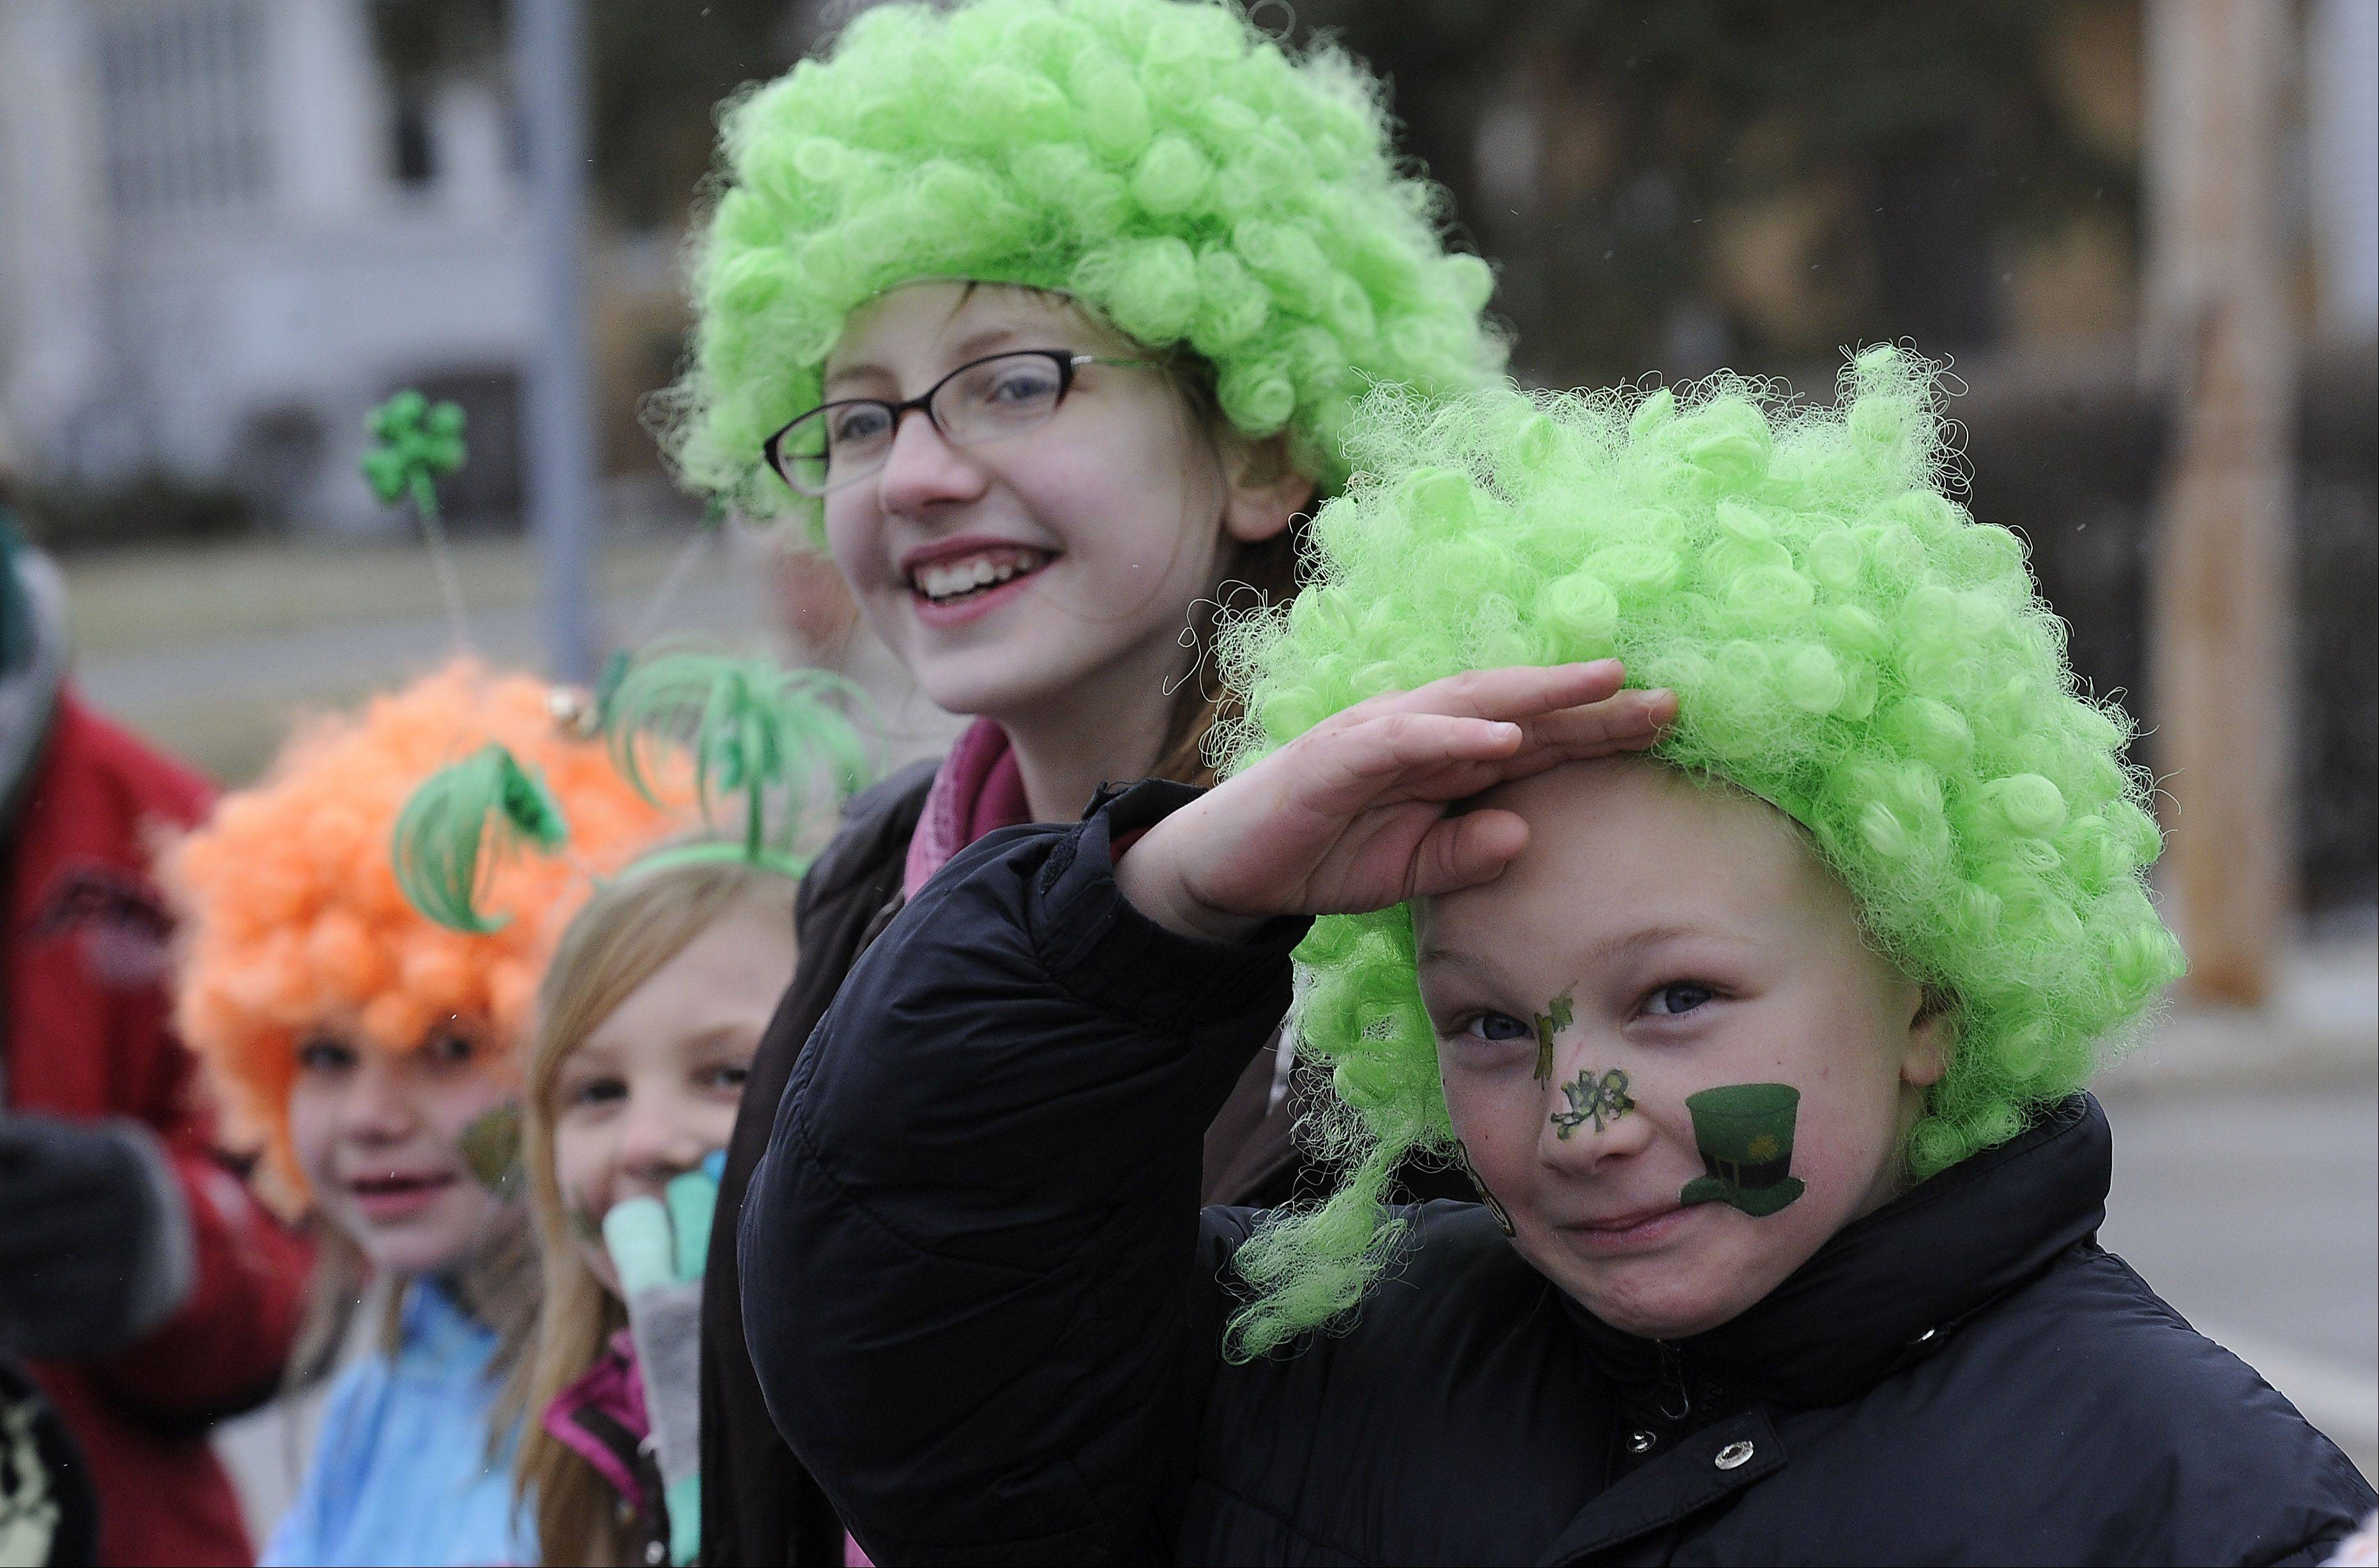 Colin Bertrand, 8, and Sara Walczynski, 10, both of Palatine, enjoy the St. Patrick's day parade Saturday in Palatine, which kicks off the town's Paint the Town Green celebration.